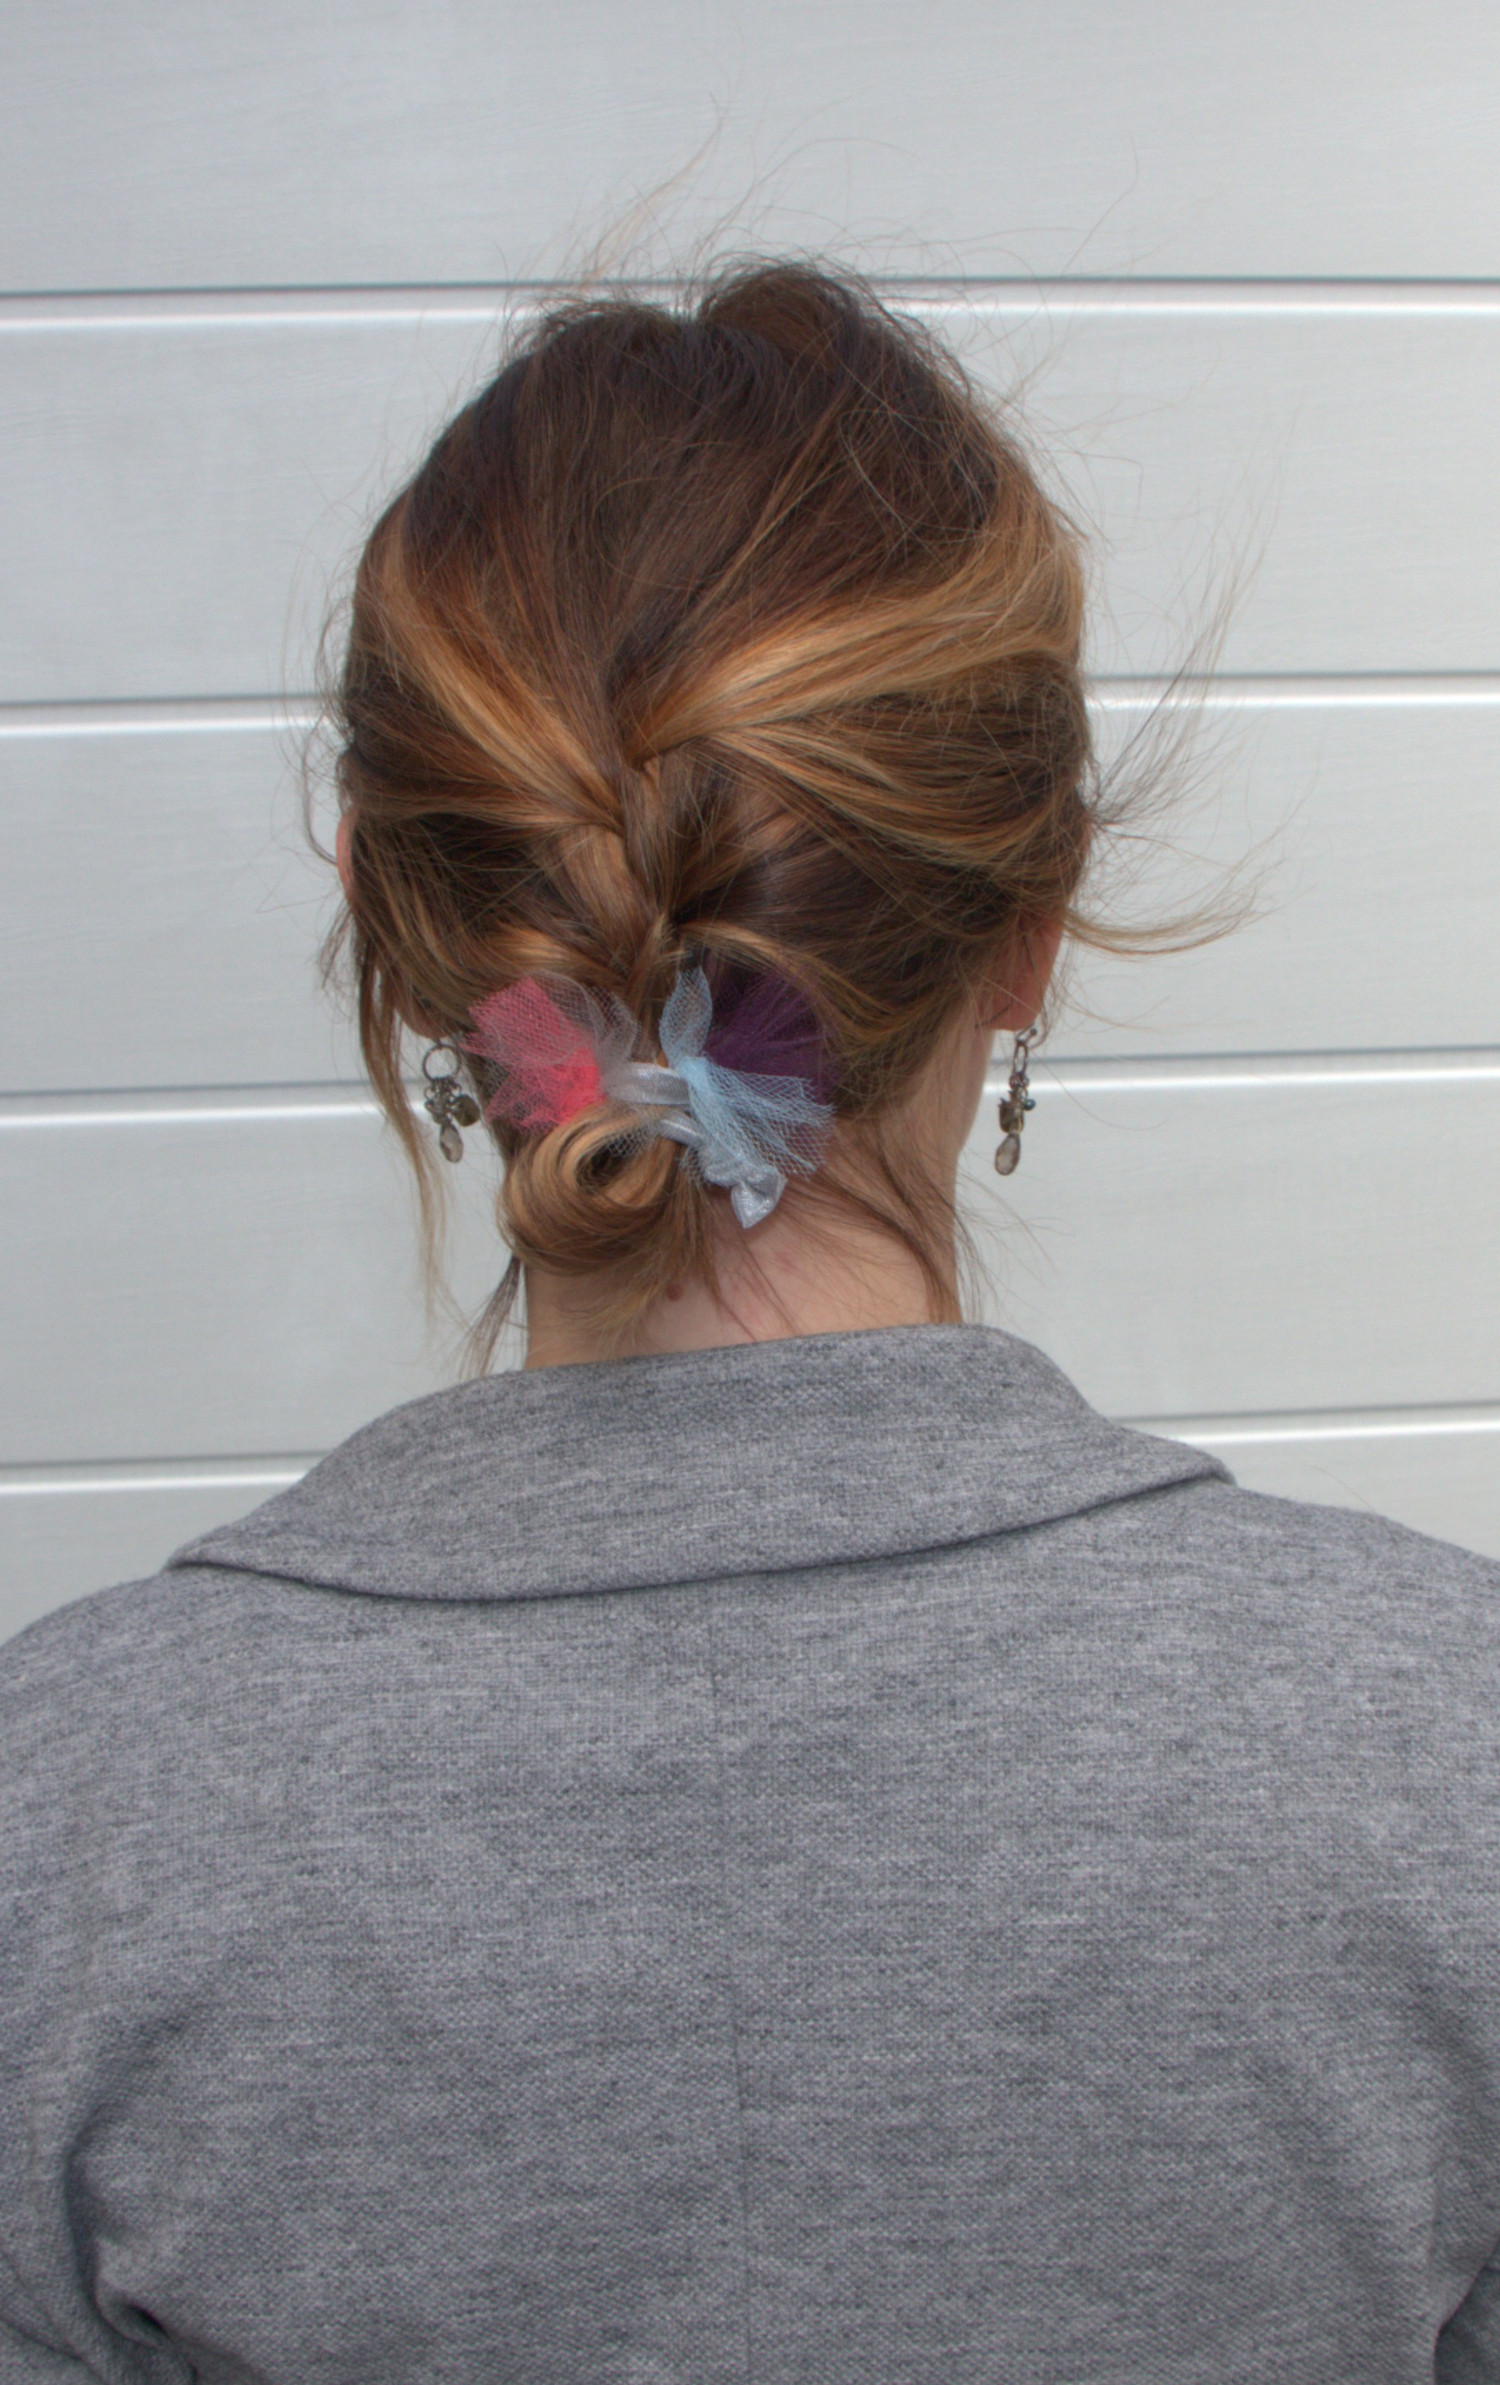 DIY Hair Accessories  How to Make Cute Hair Ties with Tulle ... 7311de79218